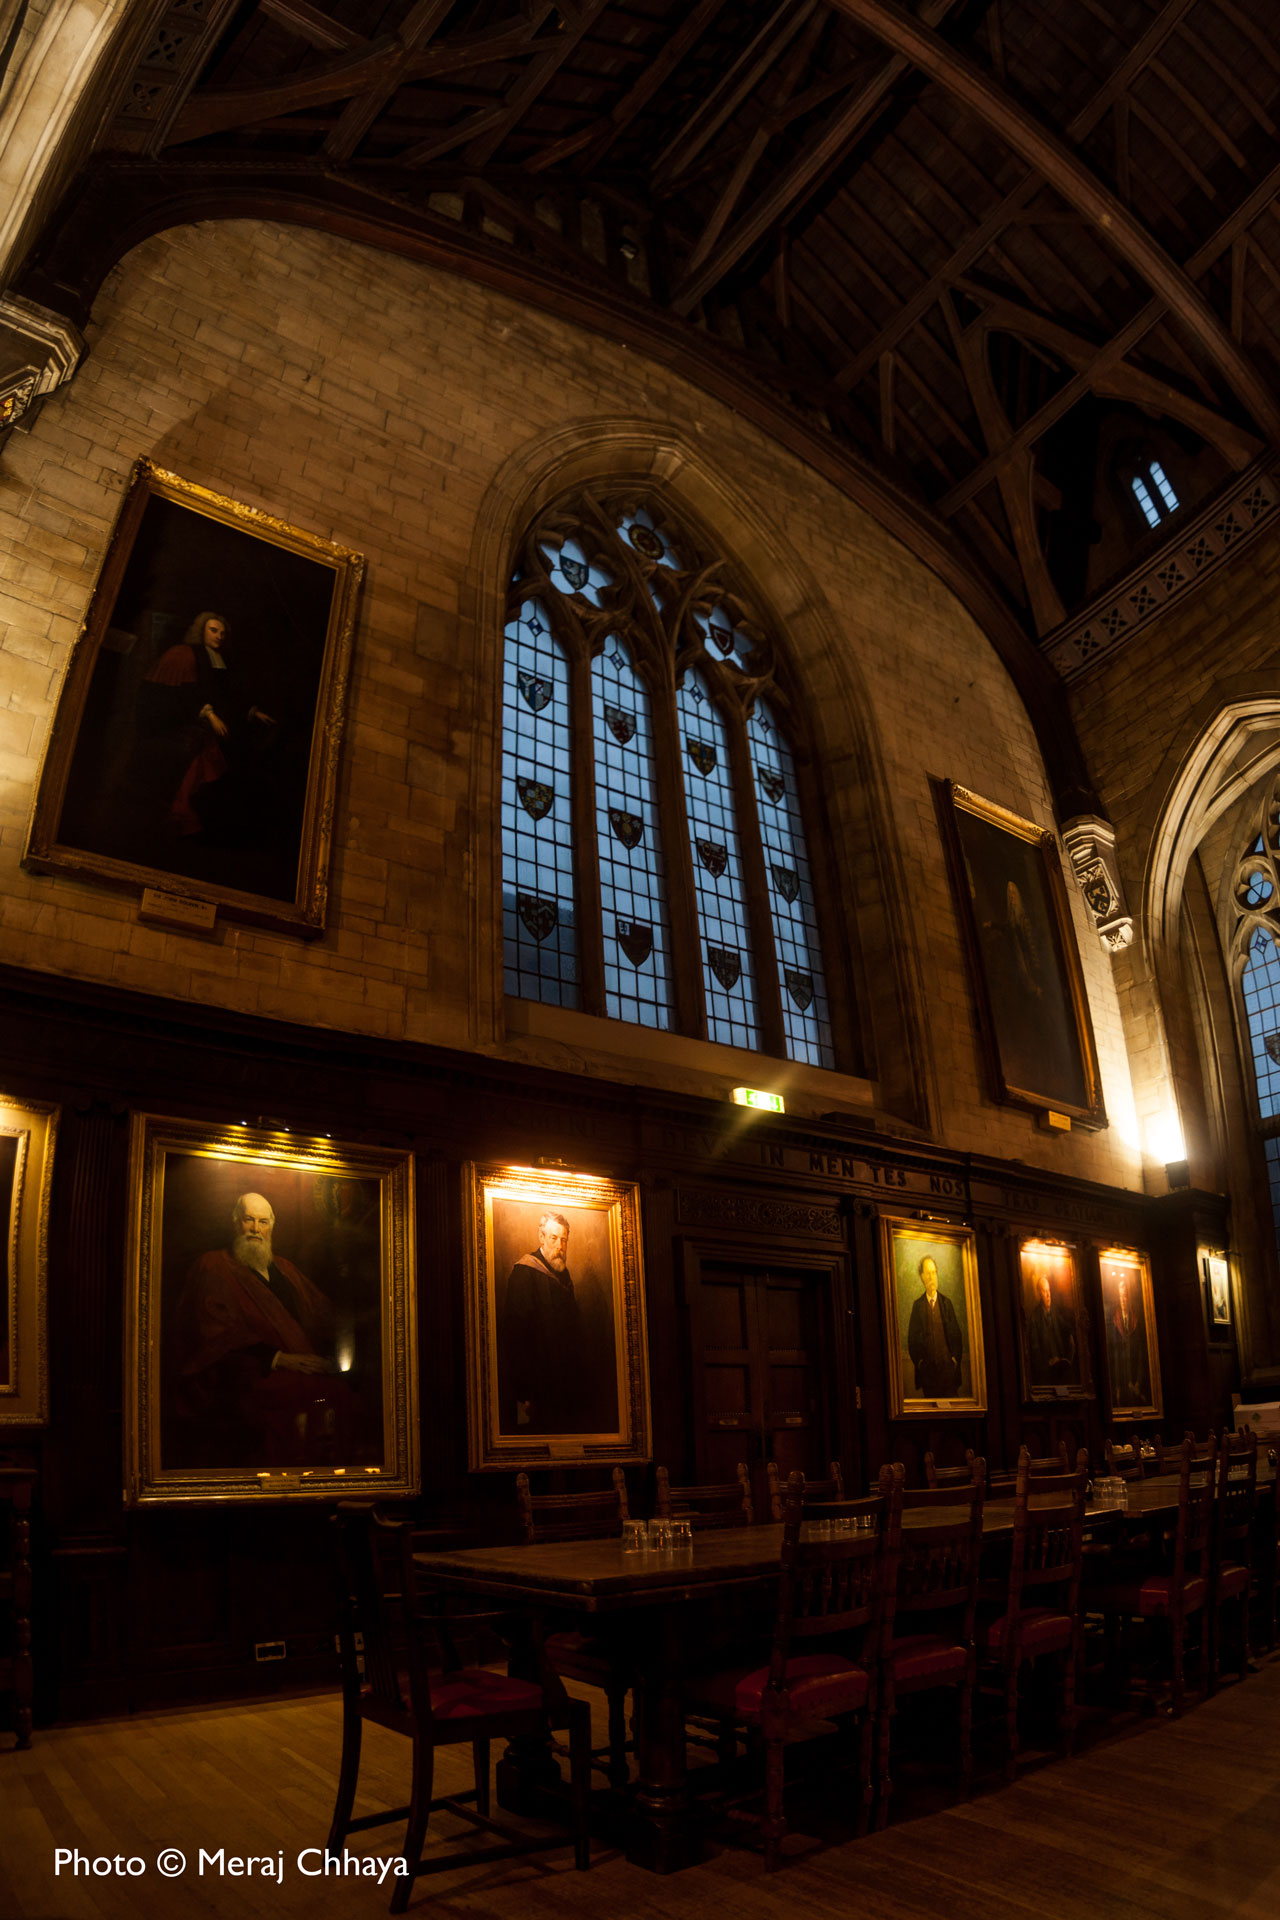 Colleges Around Me >> Balliol College | Must see Oxford University Colleges | Things to See & Do in Oxford